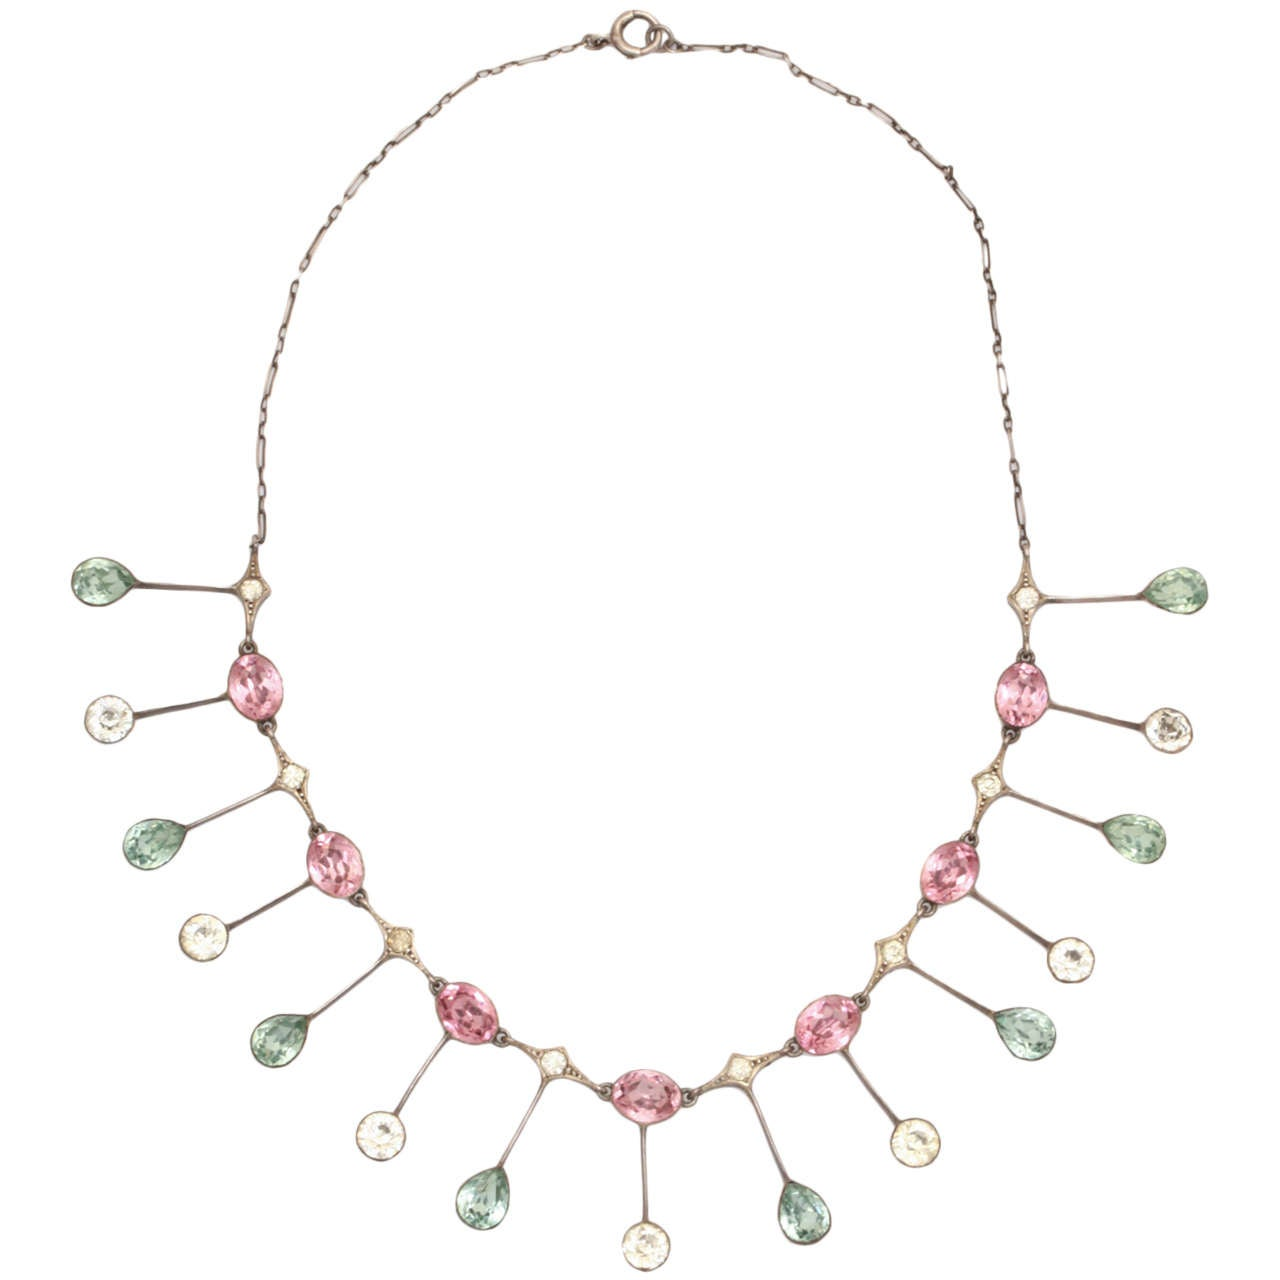 Striking Color Display in an Edwardian Paste Necklace 1